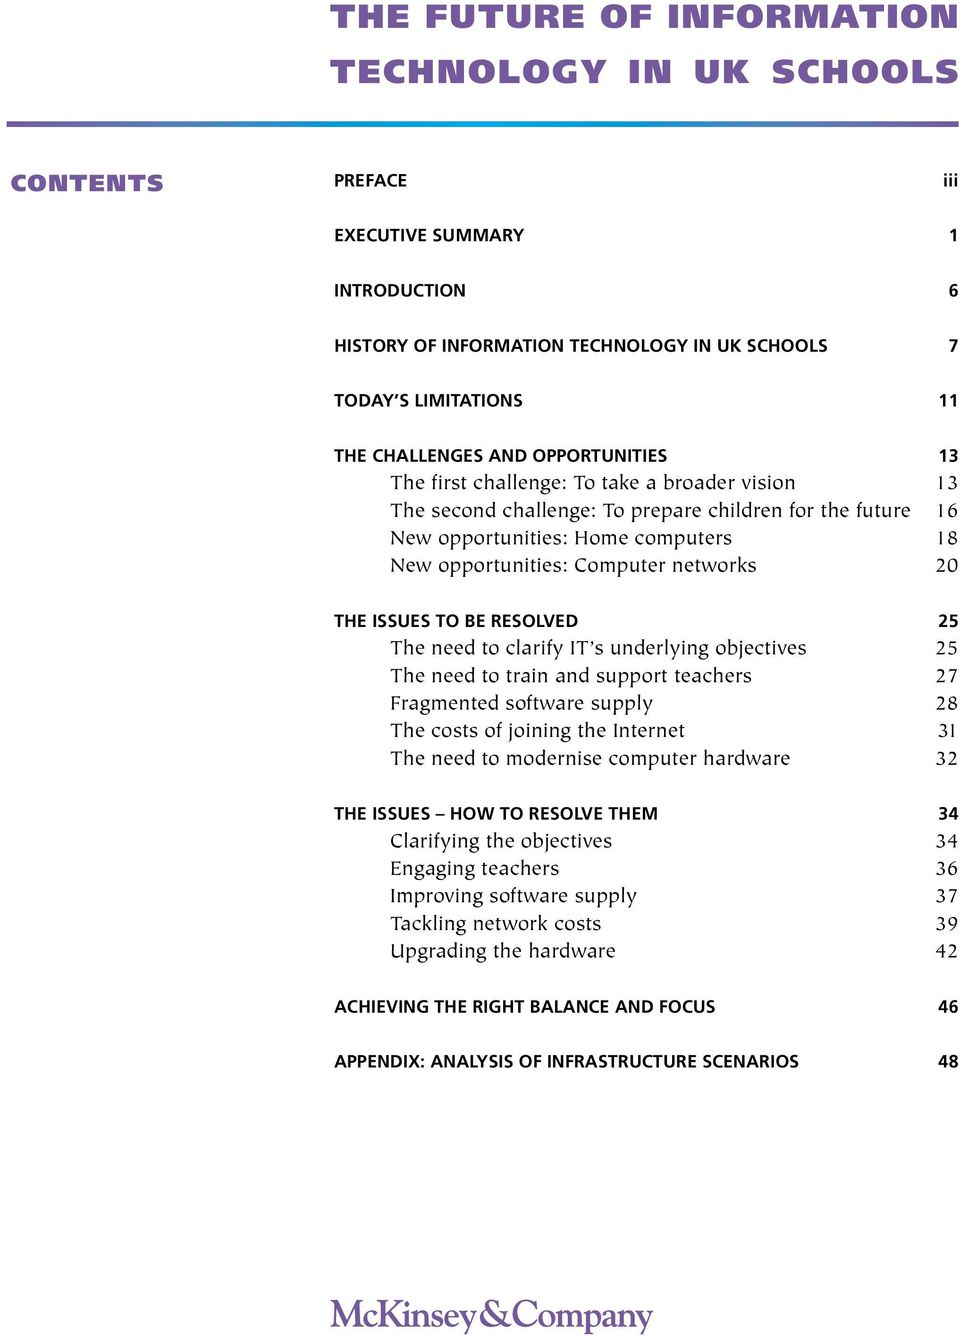 20 THE ISSUES TO BE RESOLVED 25 The need to clarify IT s underlying objectives 25 The need to train and support teachers 27 Fragmented software supply 28 The costs of joining the Internet 31 The need